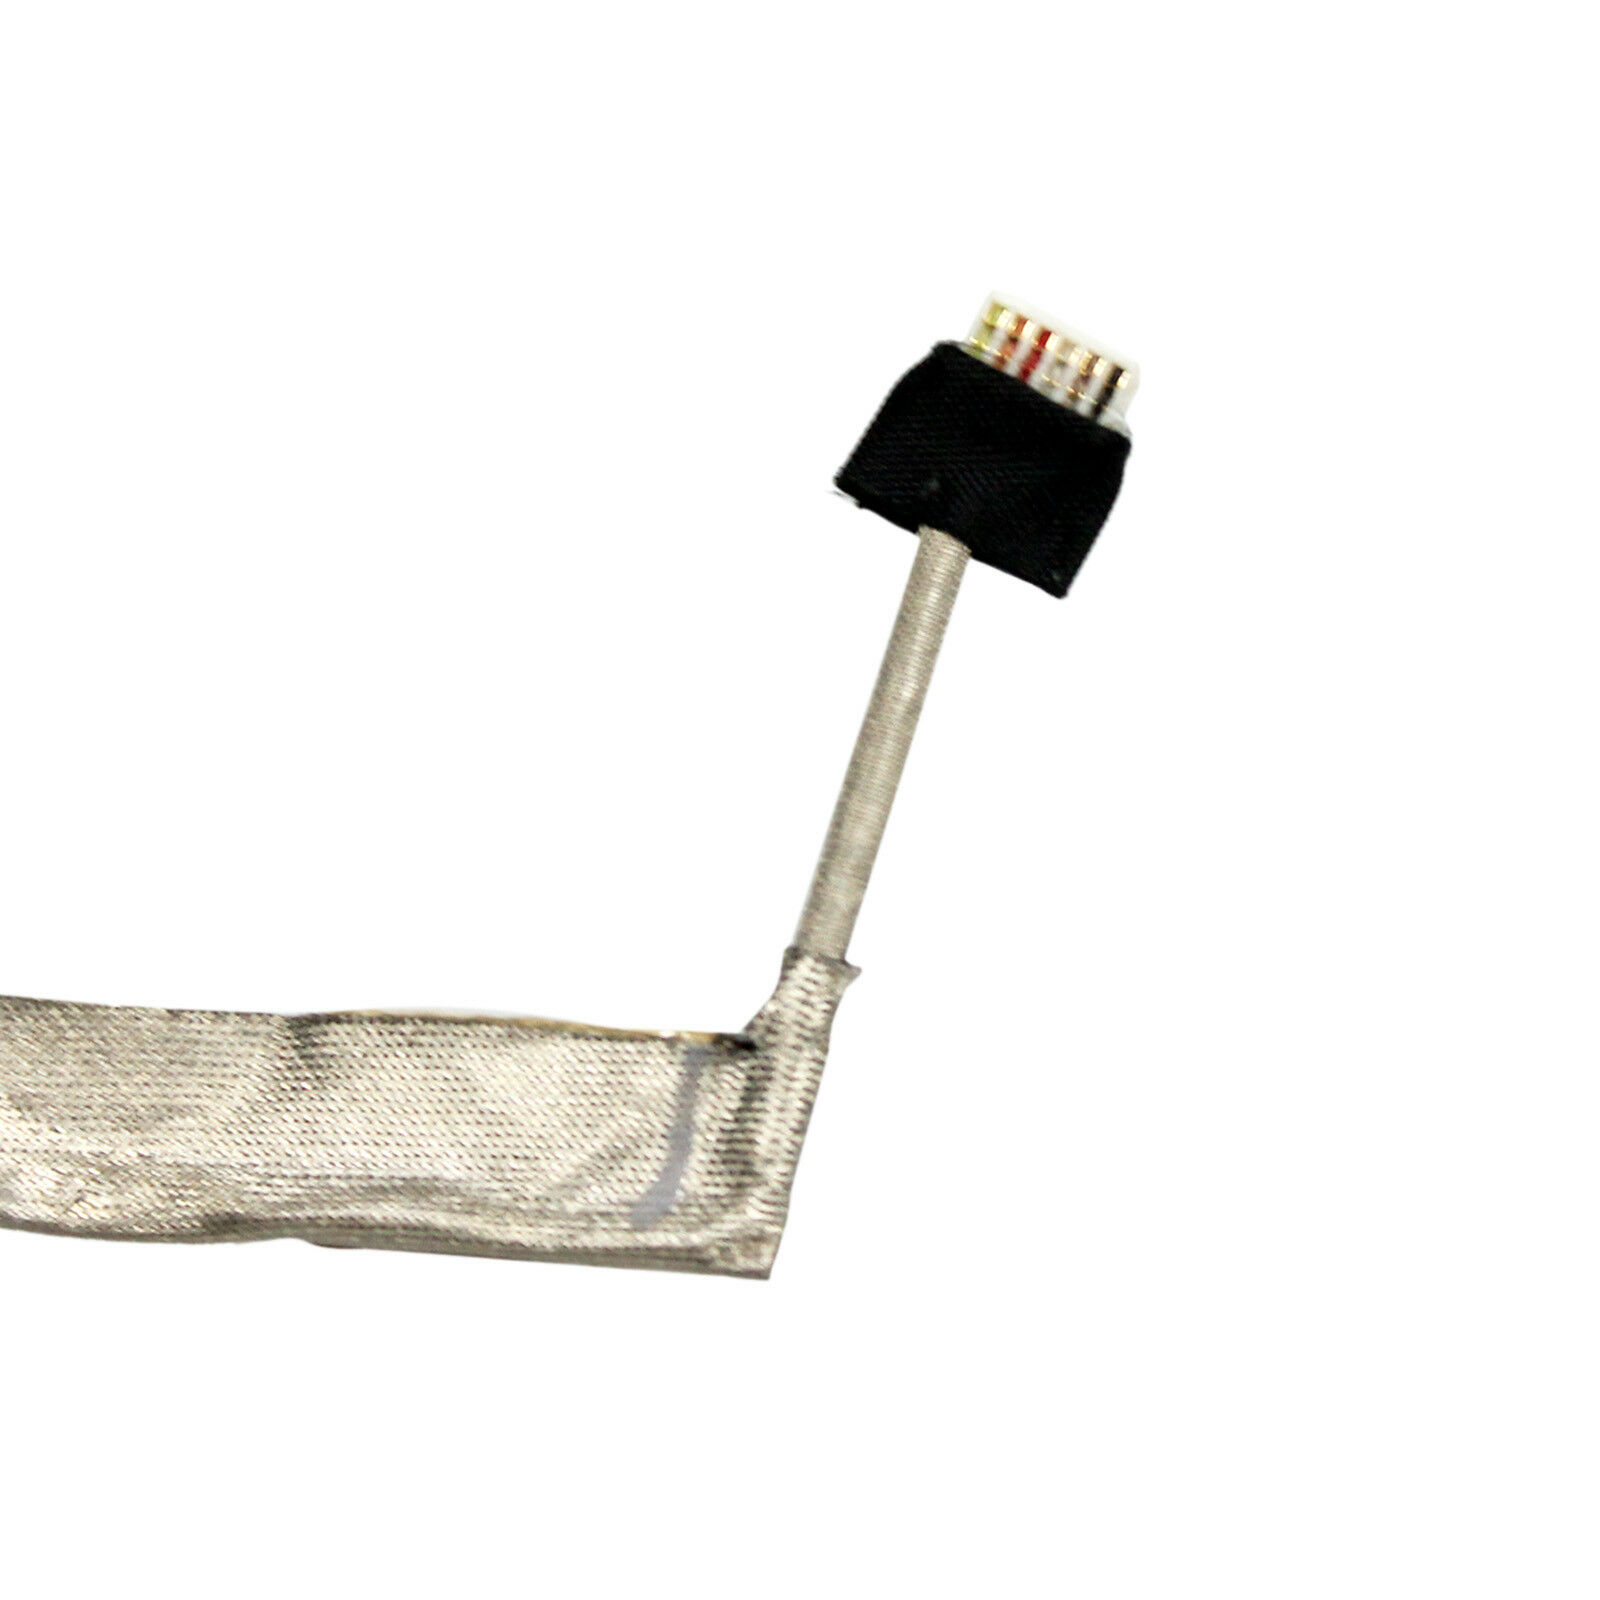 LCD LED LVDS SCREEN DISPLAY CABLE FOR Toshiba Satellite C50-A F7000 C50-A Series